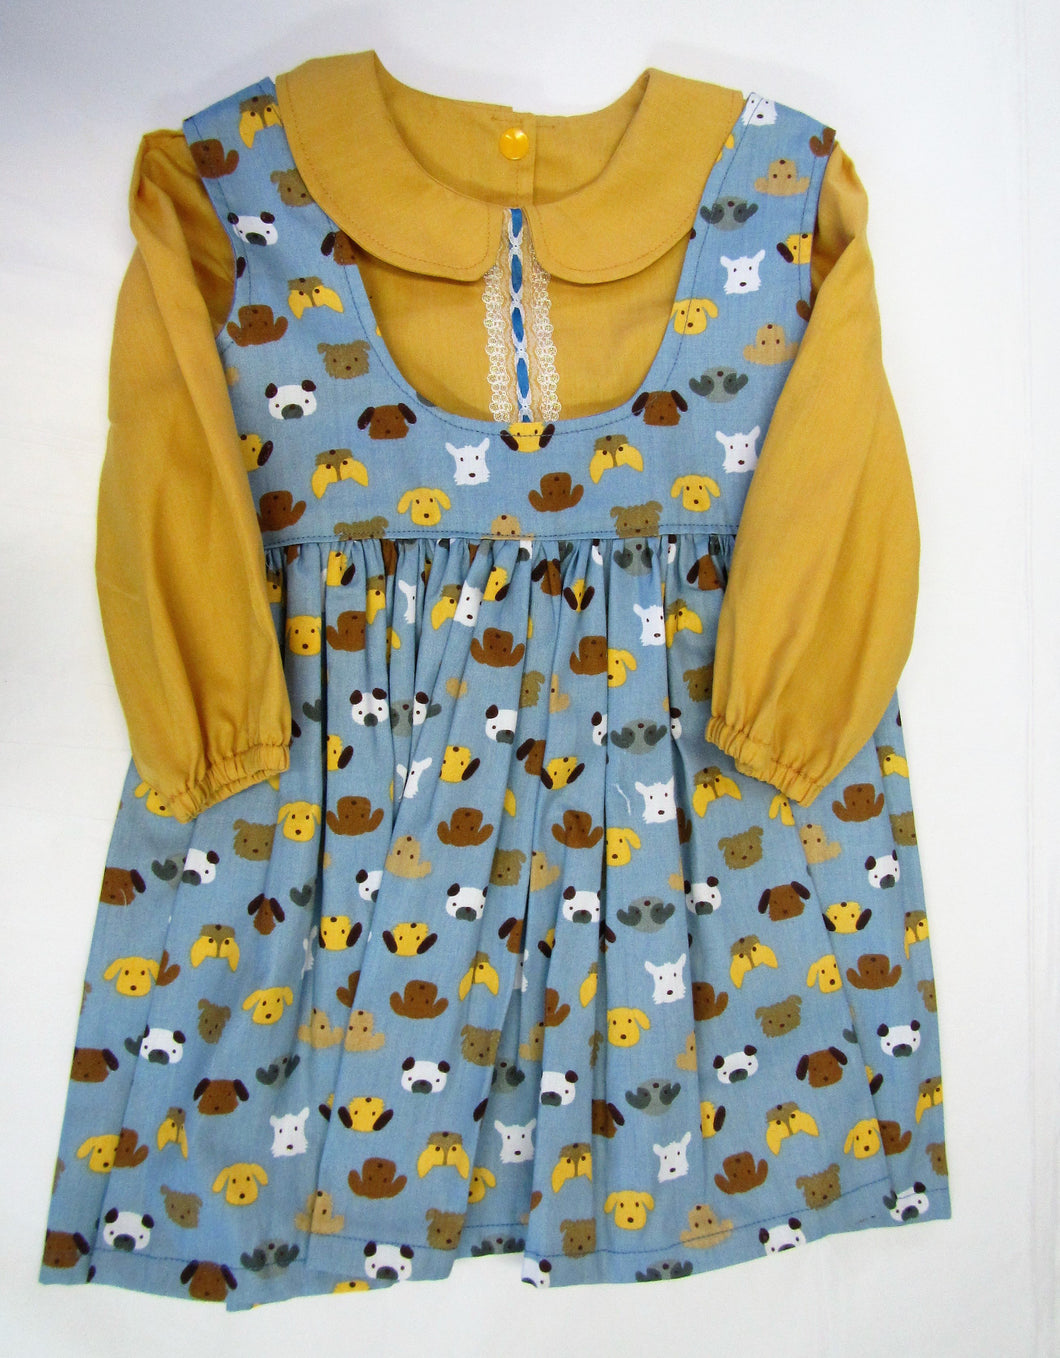 Hand crafted blue puppy dress with mustard blouse 1-2 years